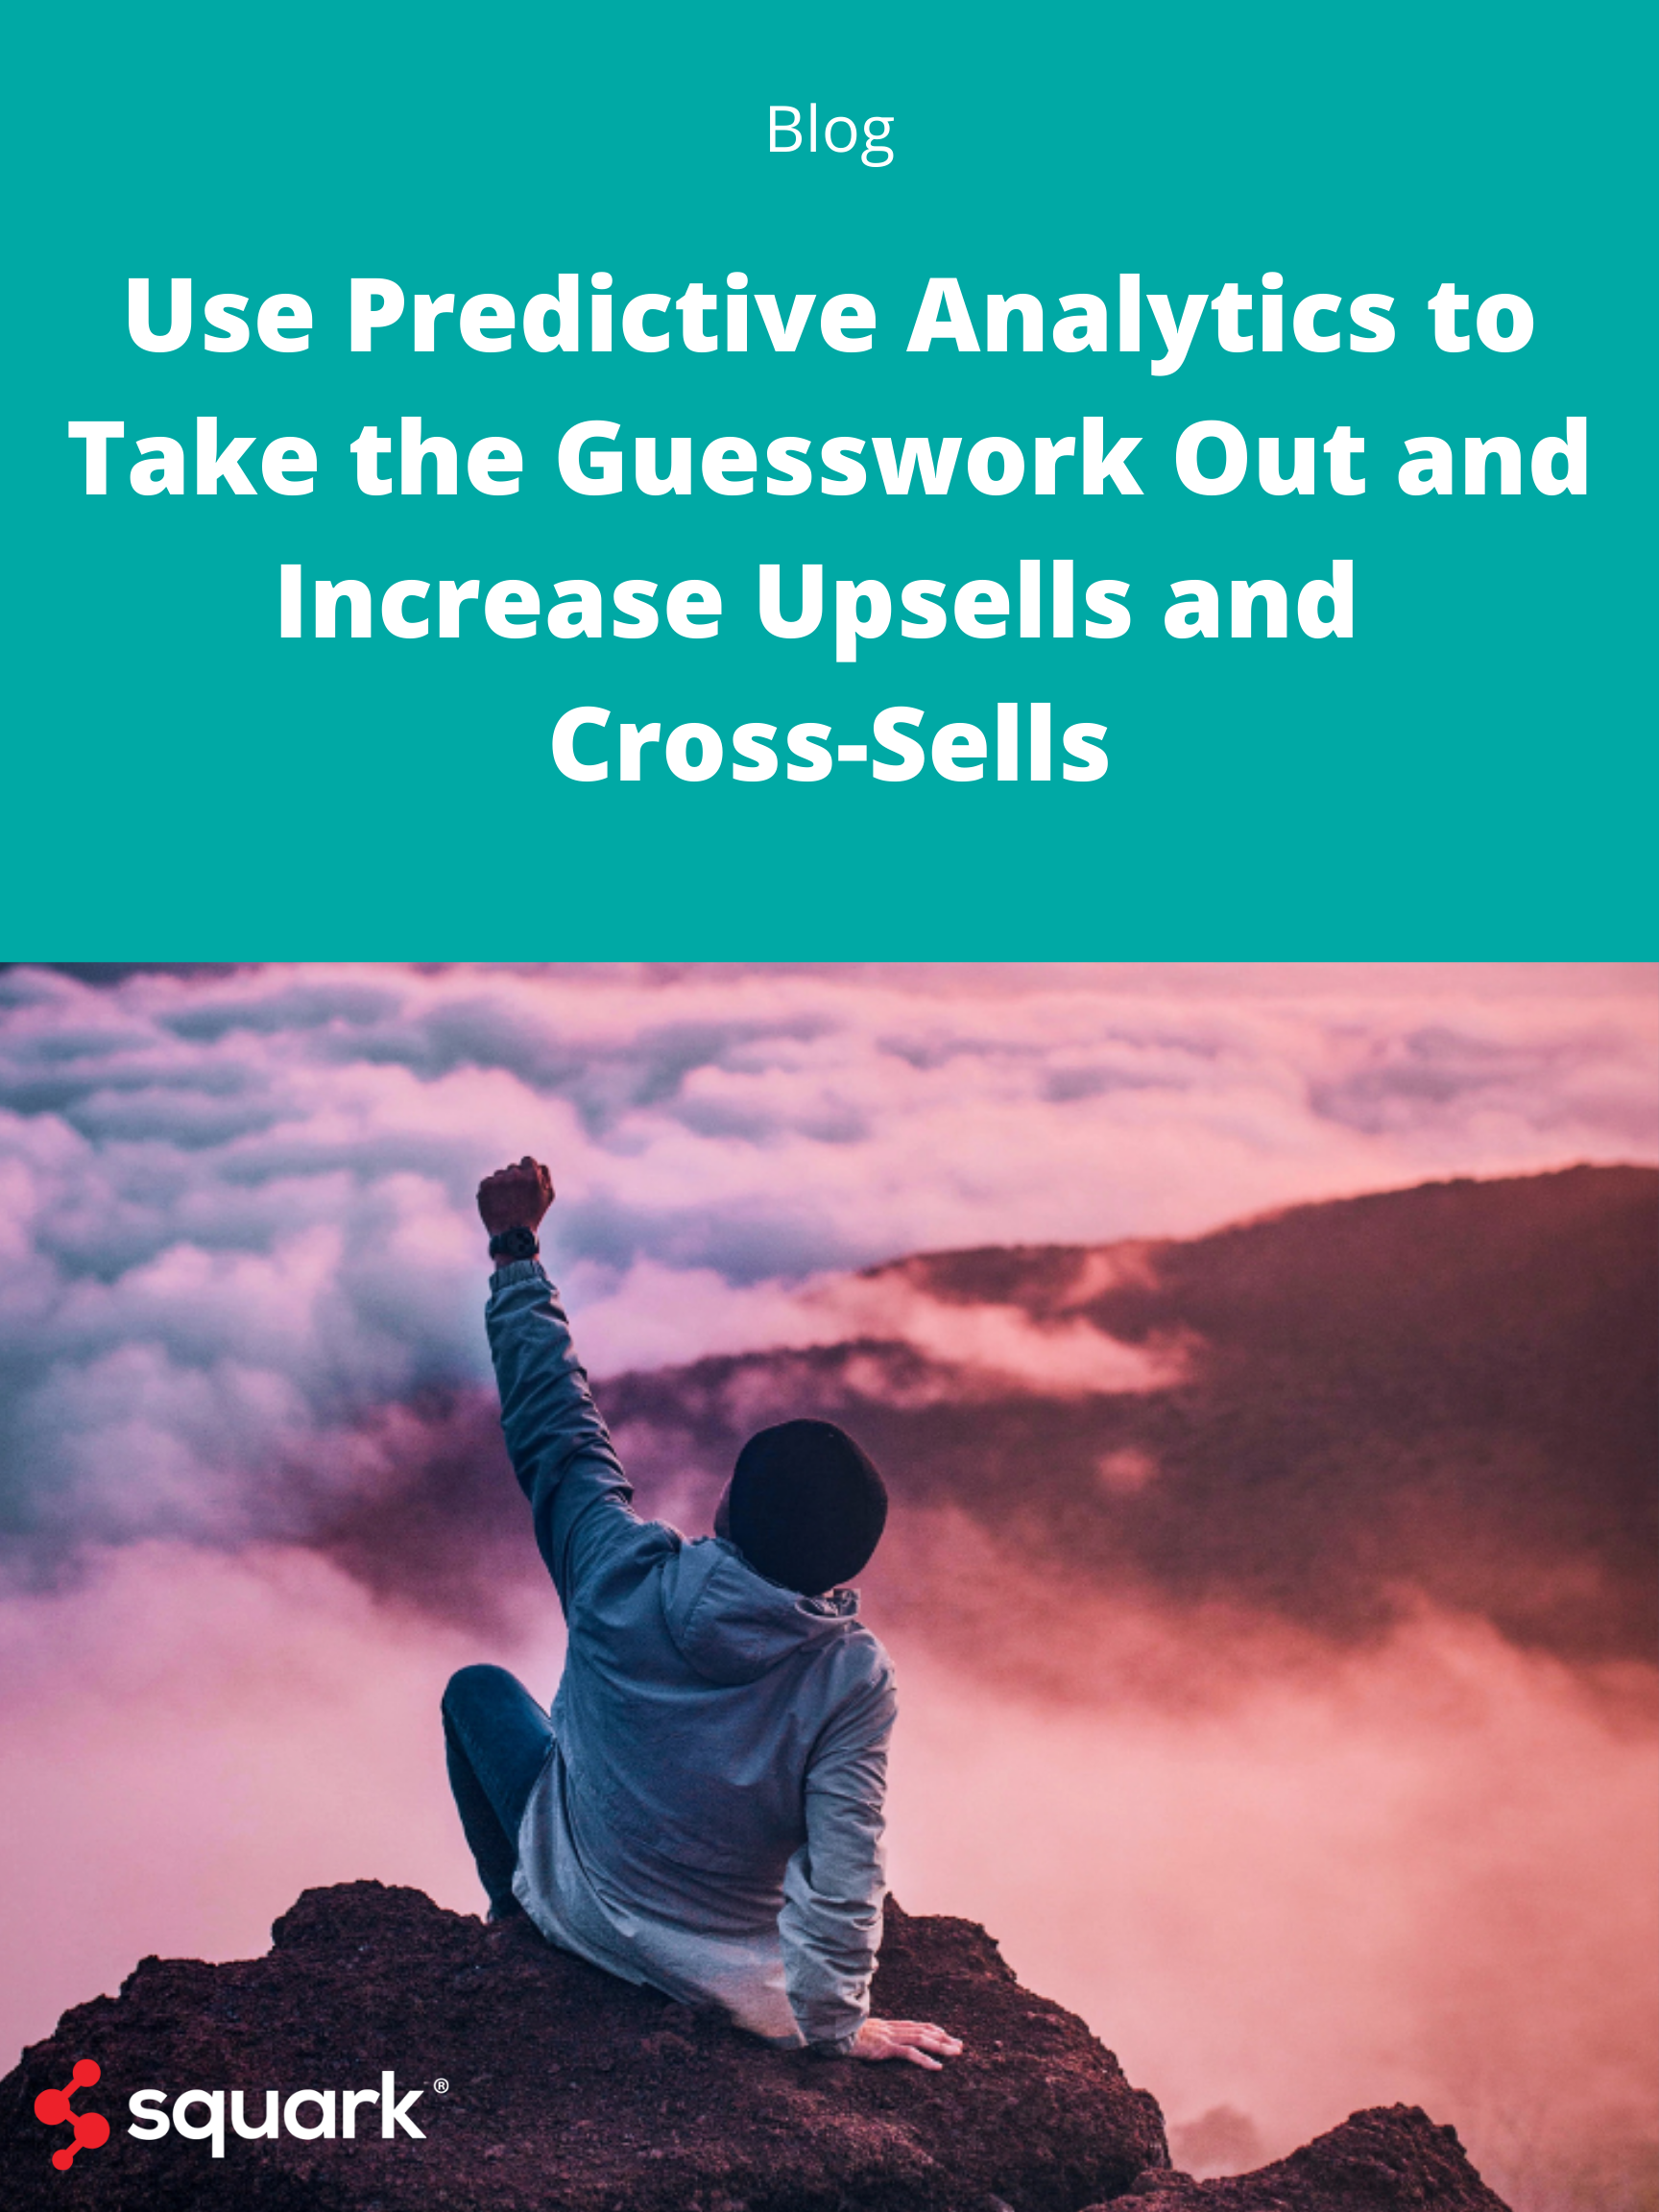 Guesswork out of Upsells & Cross-sells...Blog Post Image